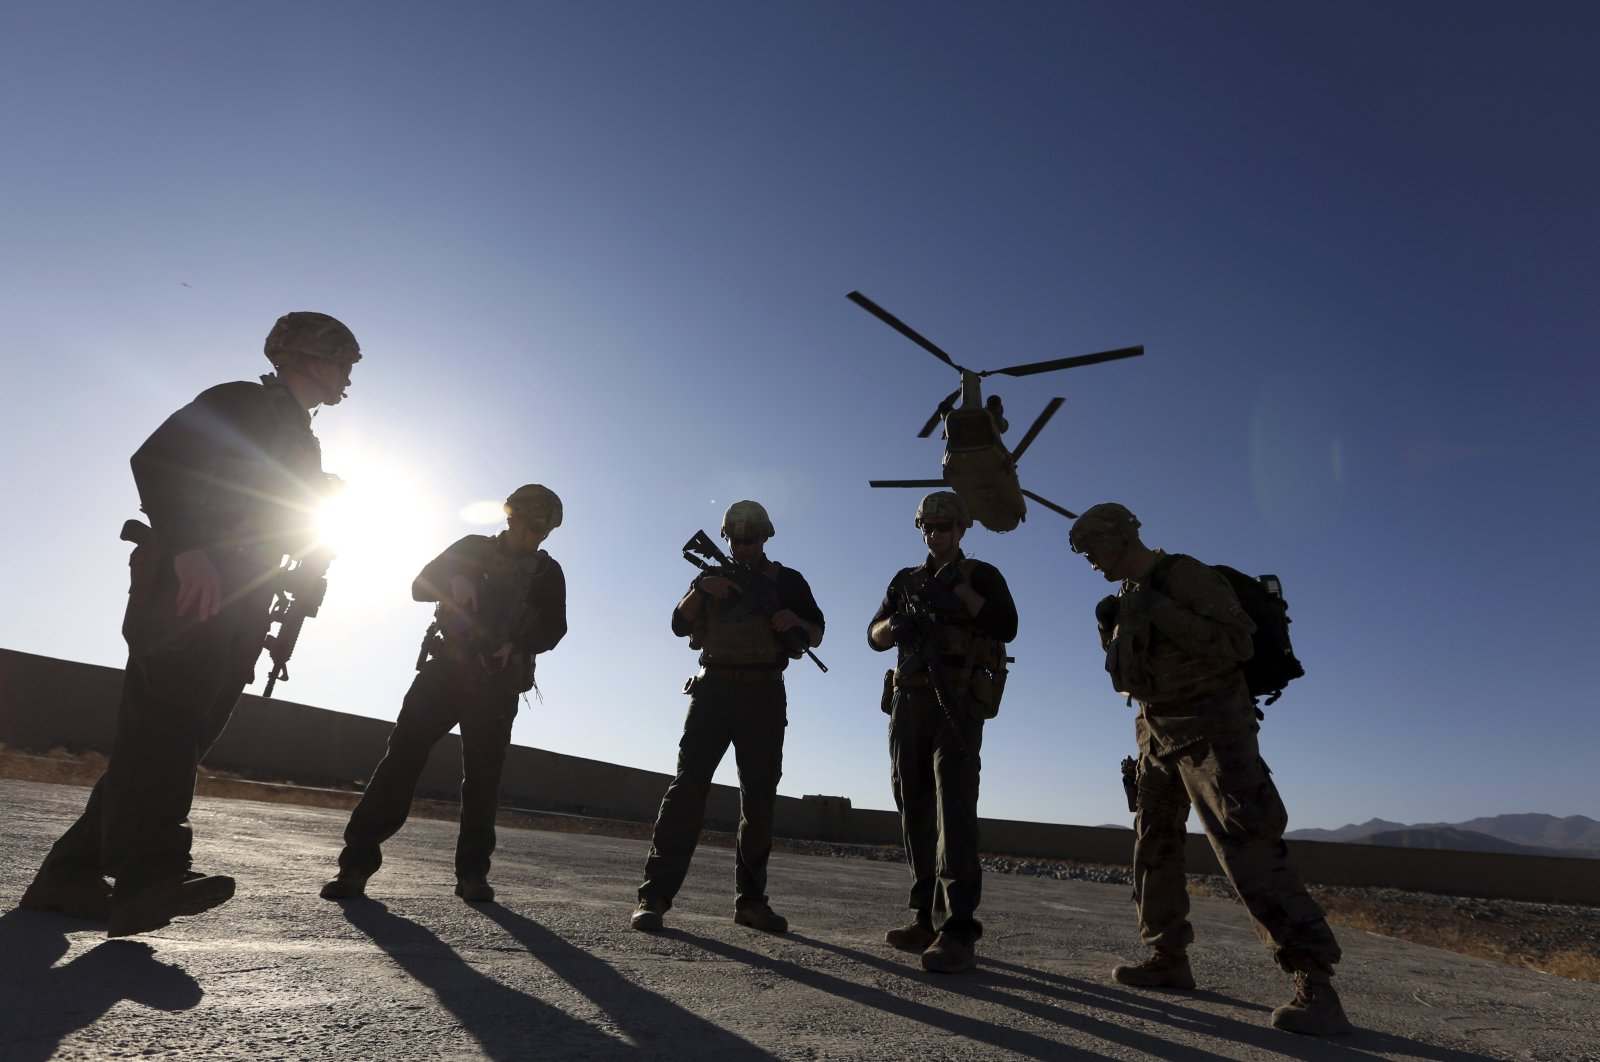 American soldiers wait on the tarmac in Logar province, Afghanistan, Nov. 30, 2017. (AP File Photo)